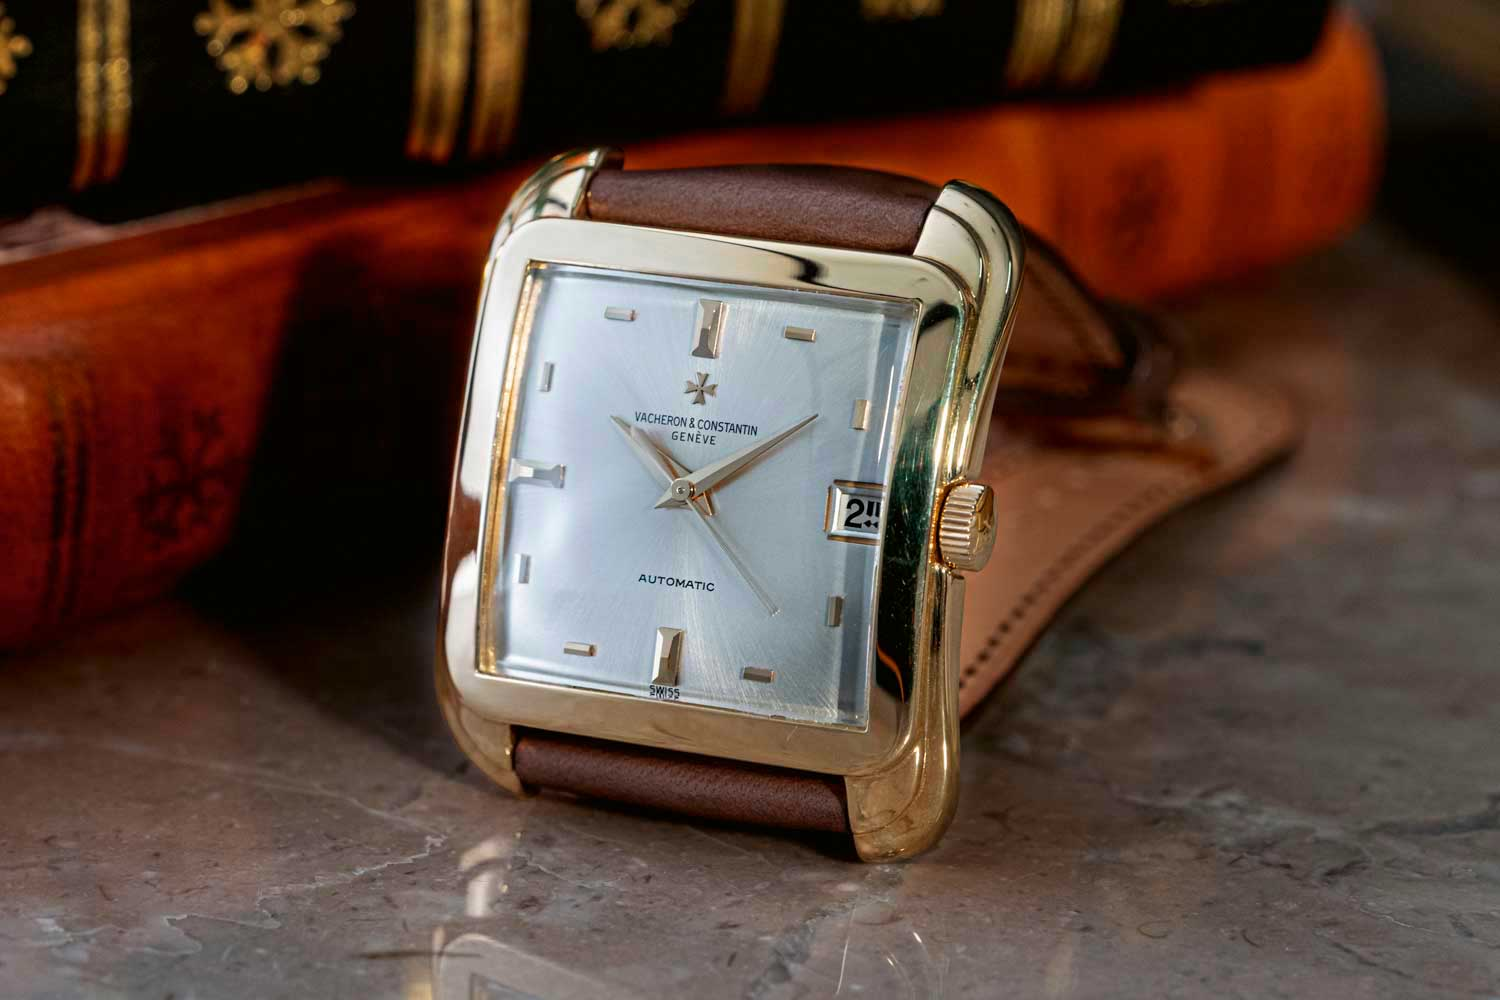 Vacheron Constantin Cioccolatone Reference 6440Q from 1967. The square-shaped 18K yellow gold automatic wristwatch has a silvered sunray-satined dial, indexes in gold, date aperture at 3 o'clock, center seconds (©Revolution)